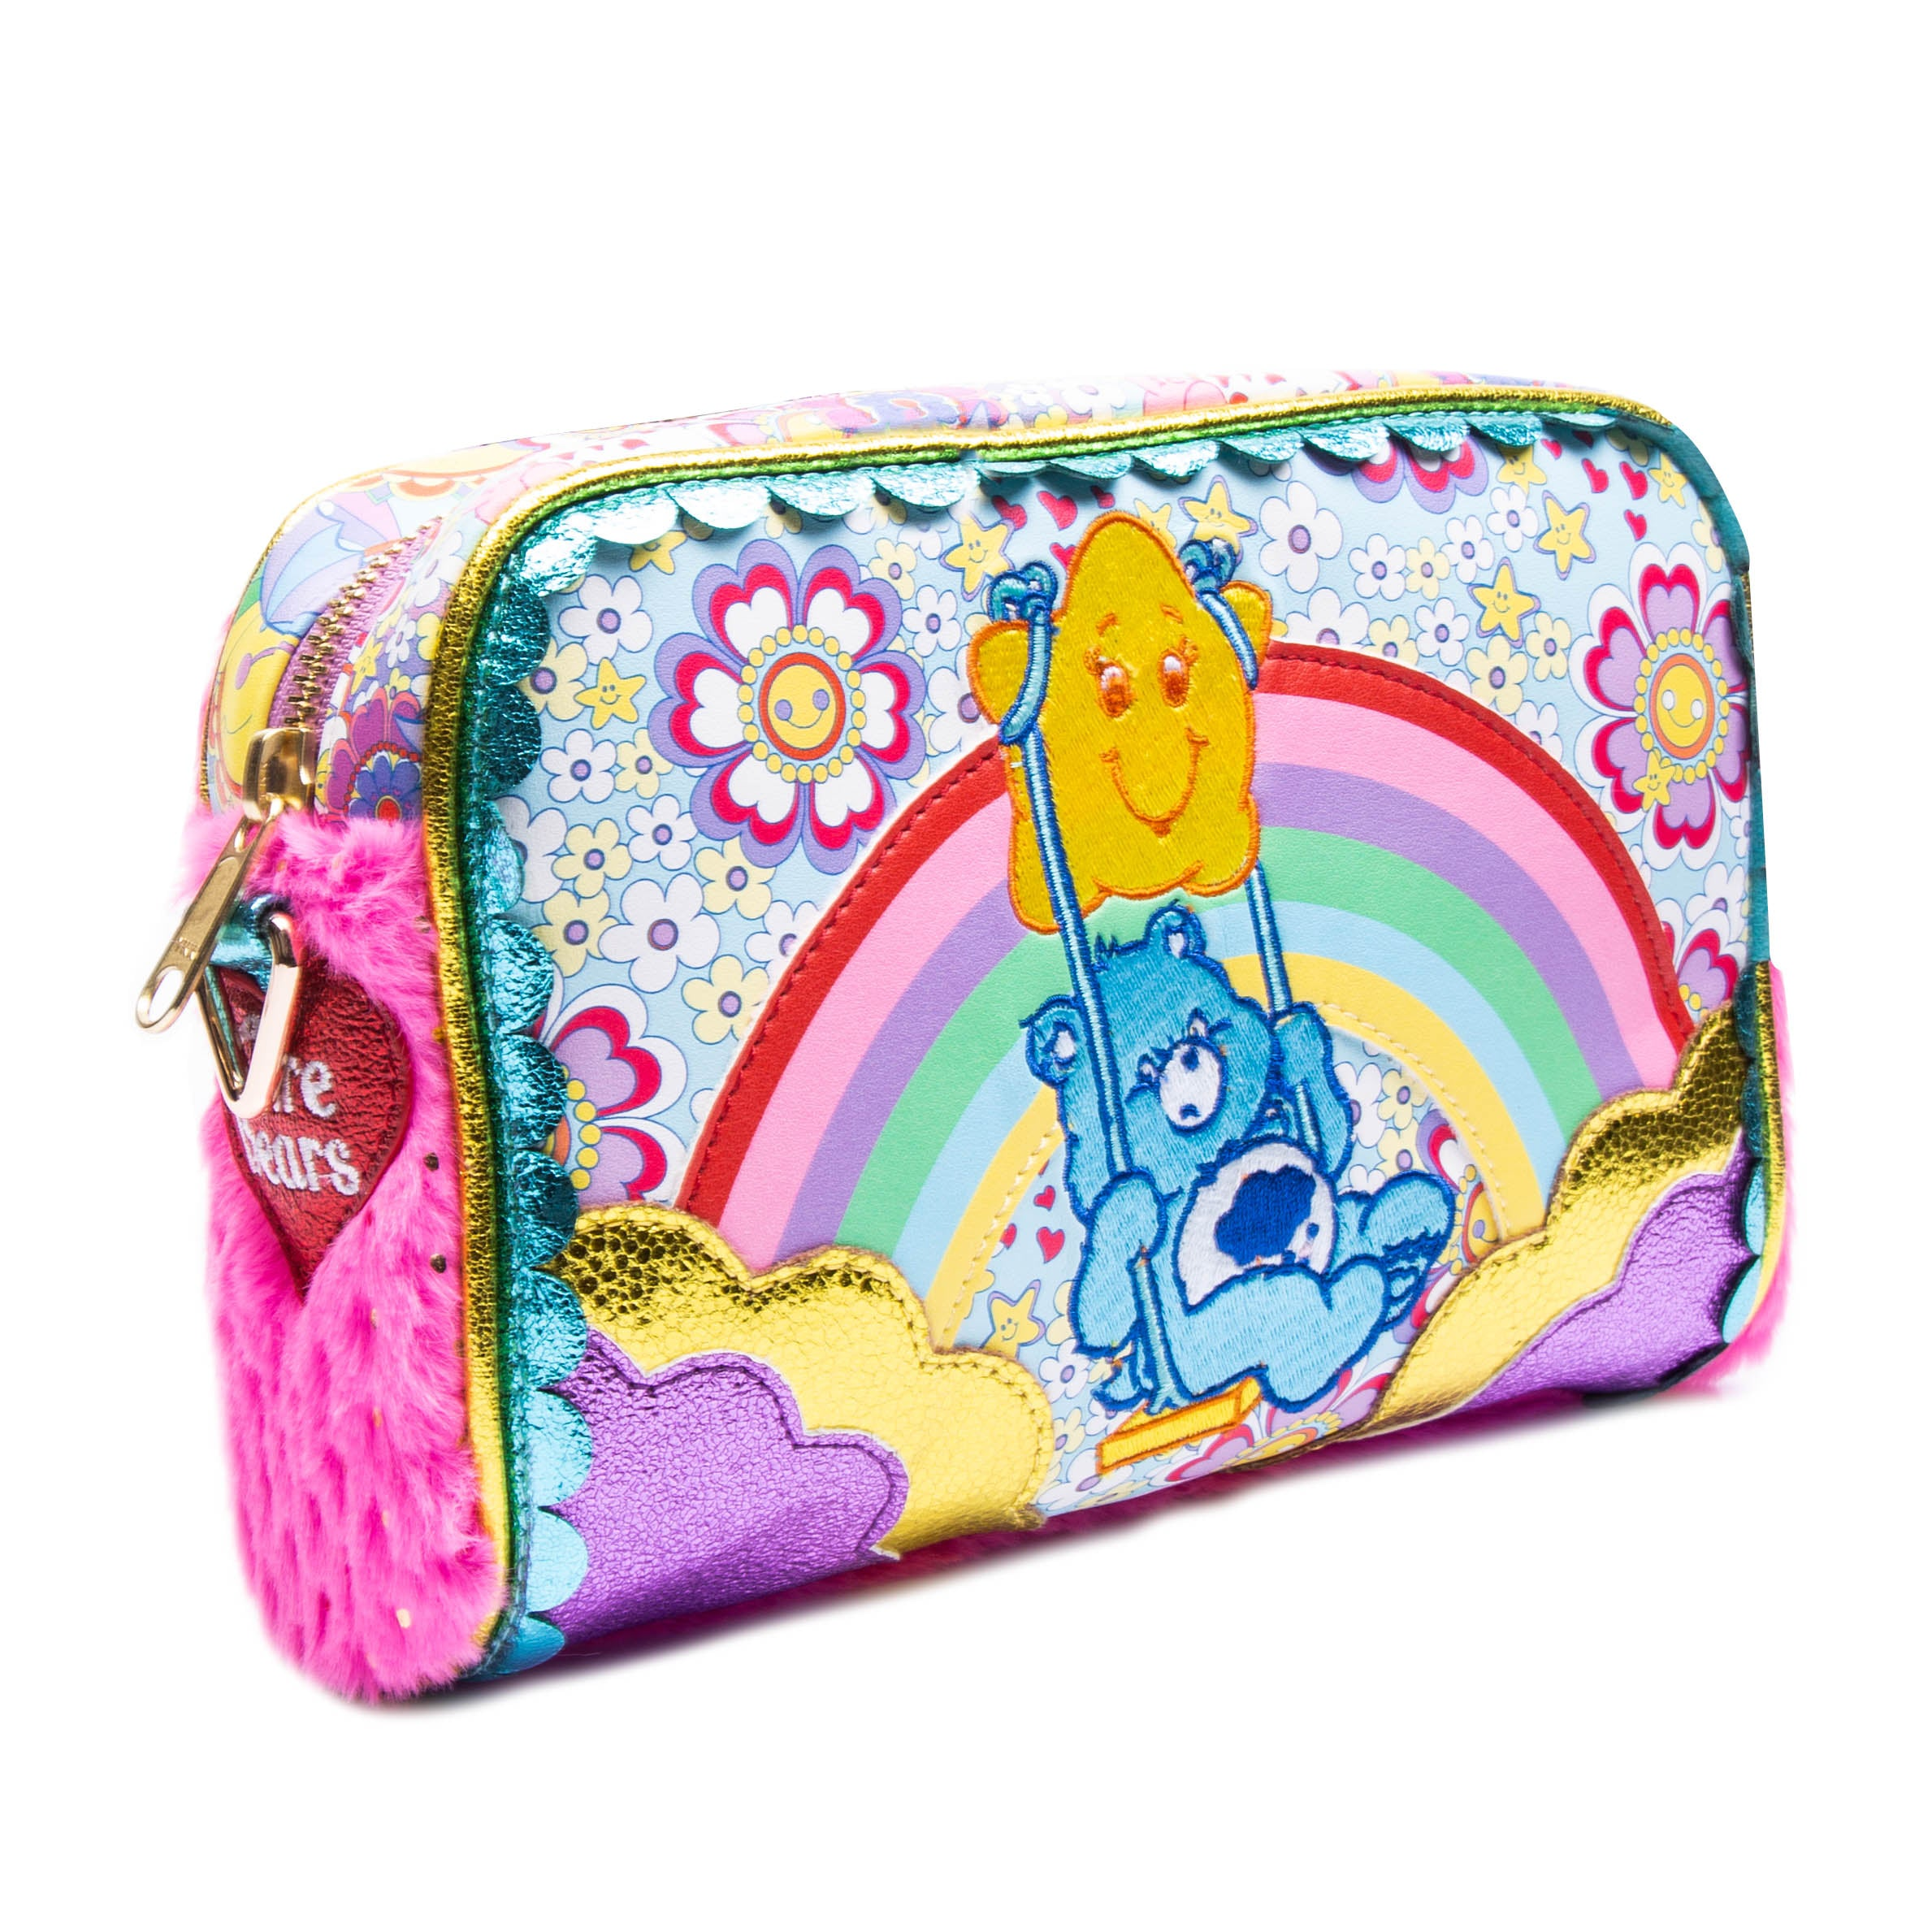 Care Bears Hug With Care Clutch